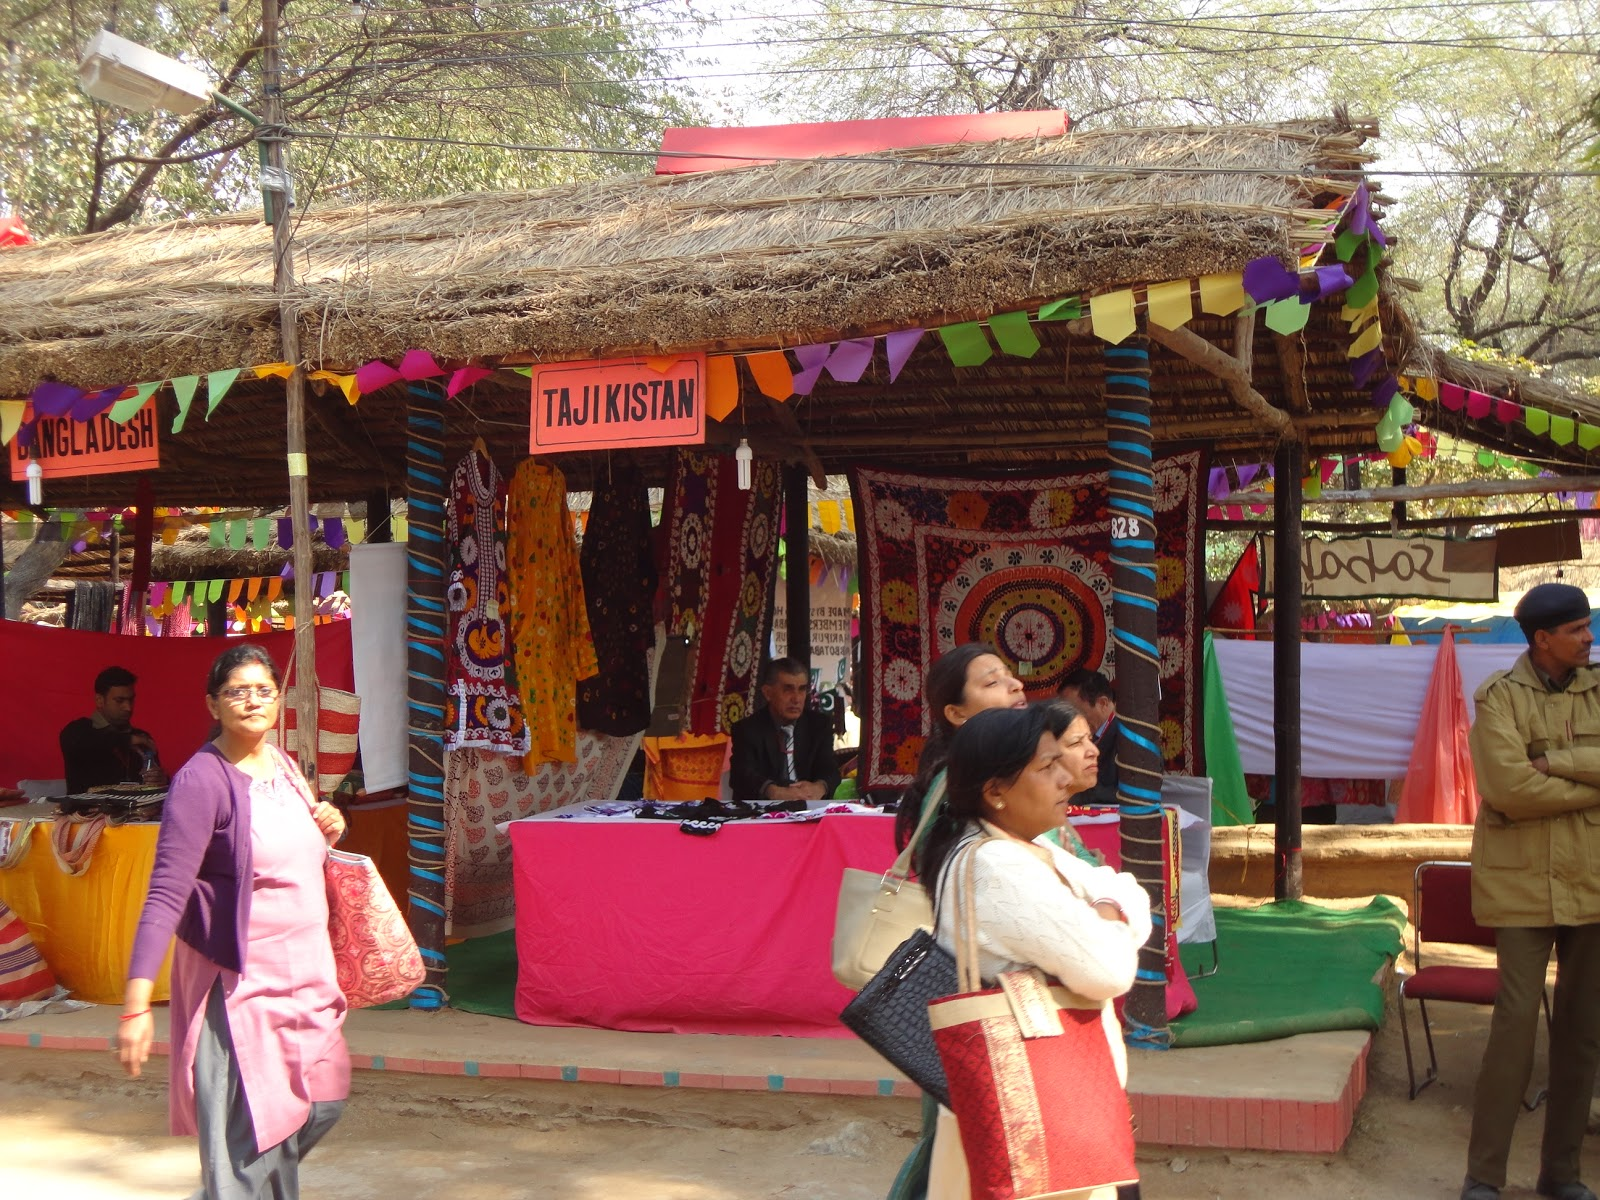 Tajakistan Stall at Surajkund Crafts Mela,India